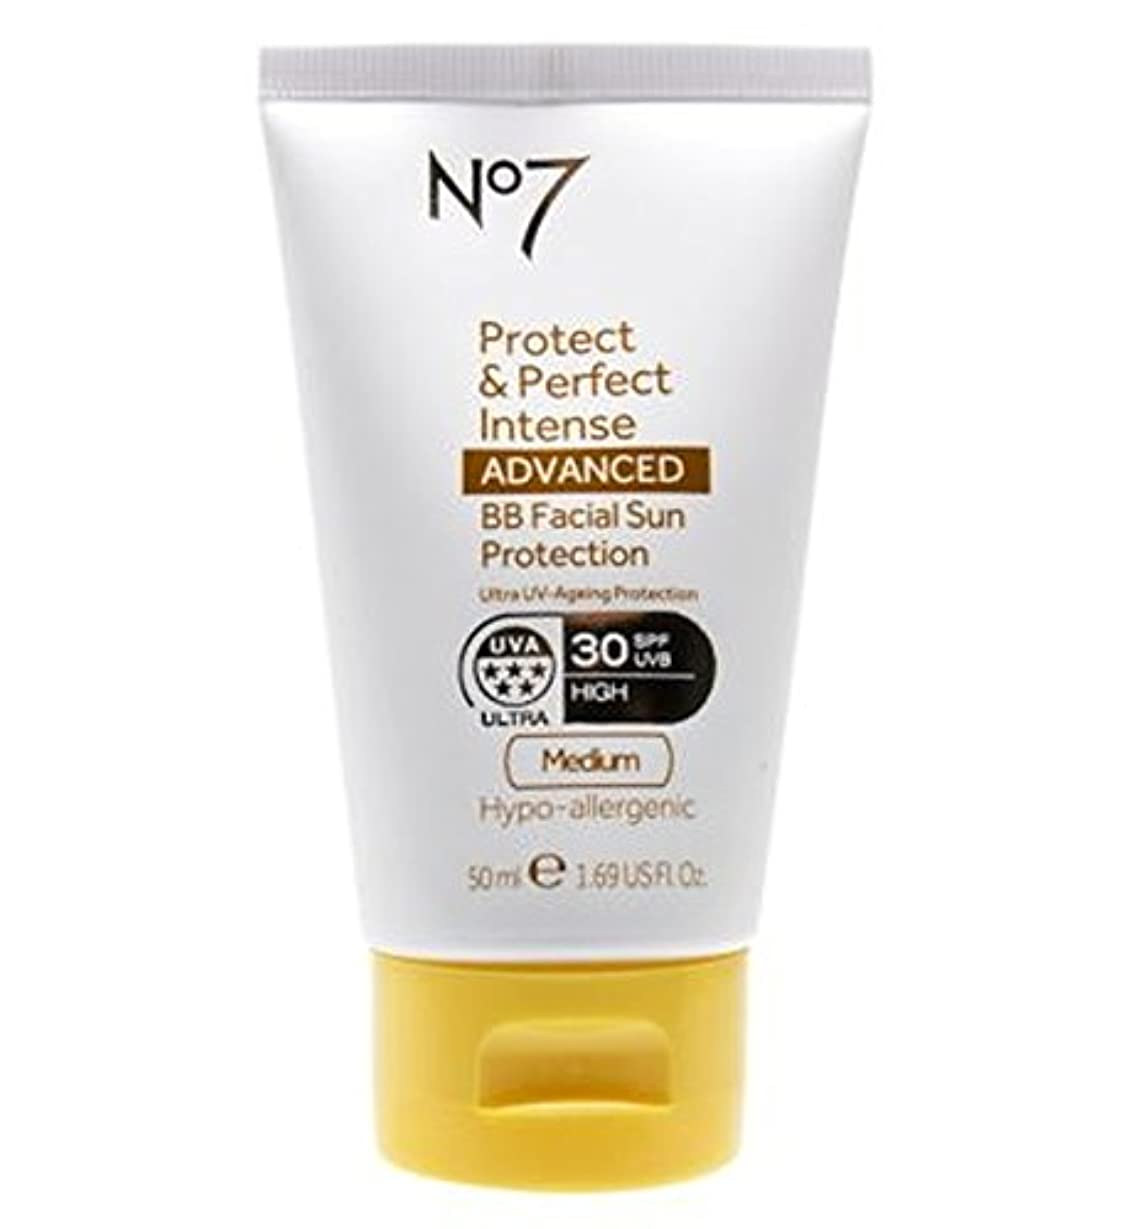 眼ブッシュ絞るNo7 Protect & Perfect Intense ADVANCED BB Facial Sun Protection SPF30 Medium 50ml - No7保護&完璧な強烈な先進Bb顔の日焼け防止Spf30...